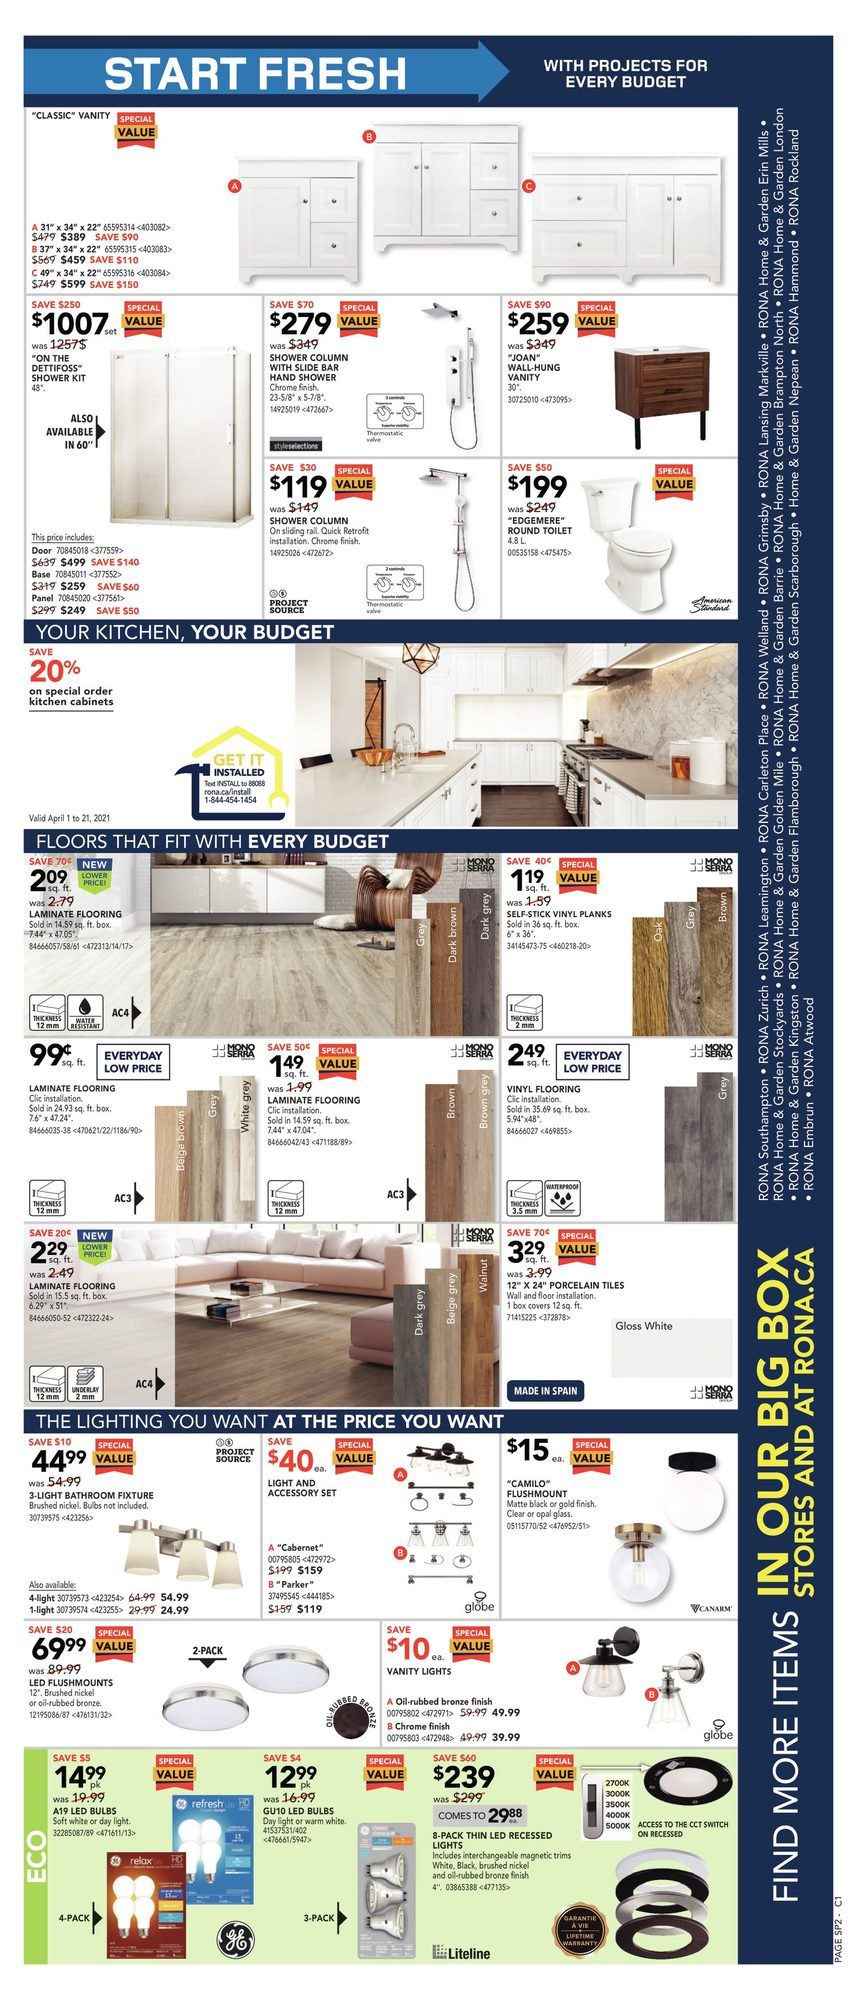 Rona - Weekly Flyer Specials - Page 8